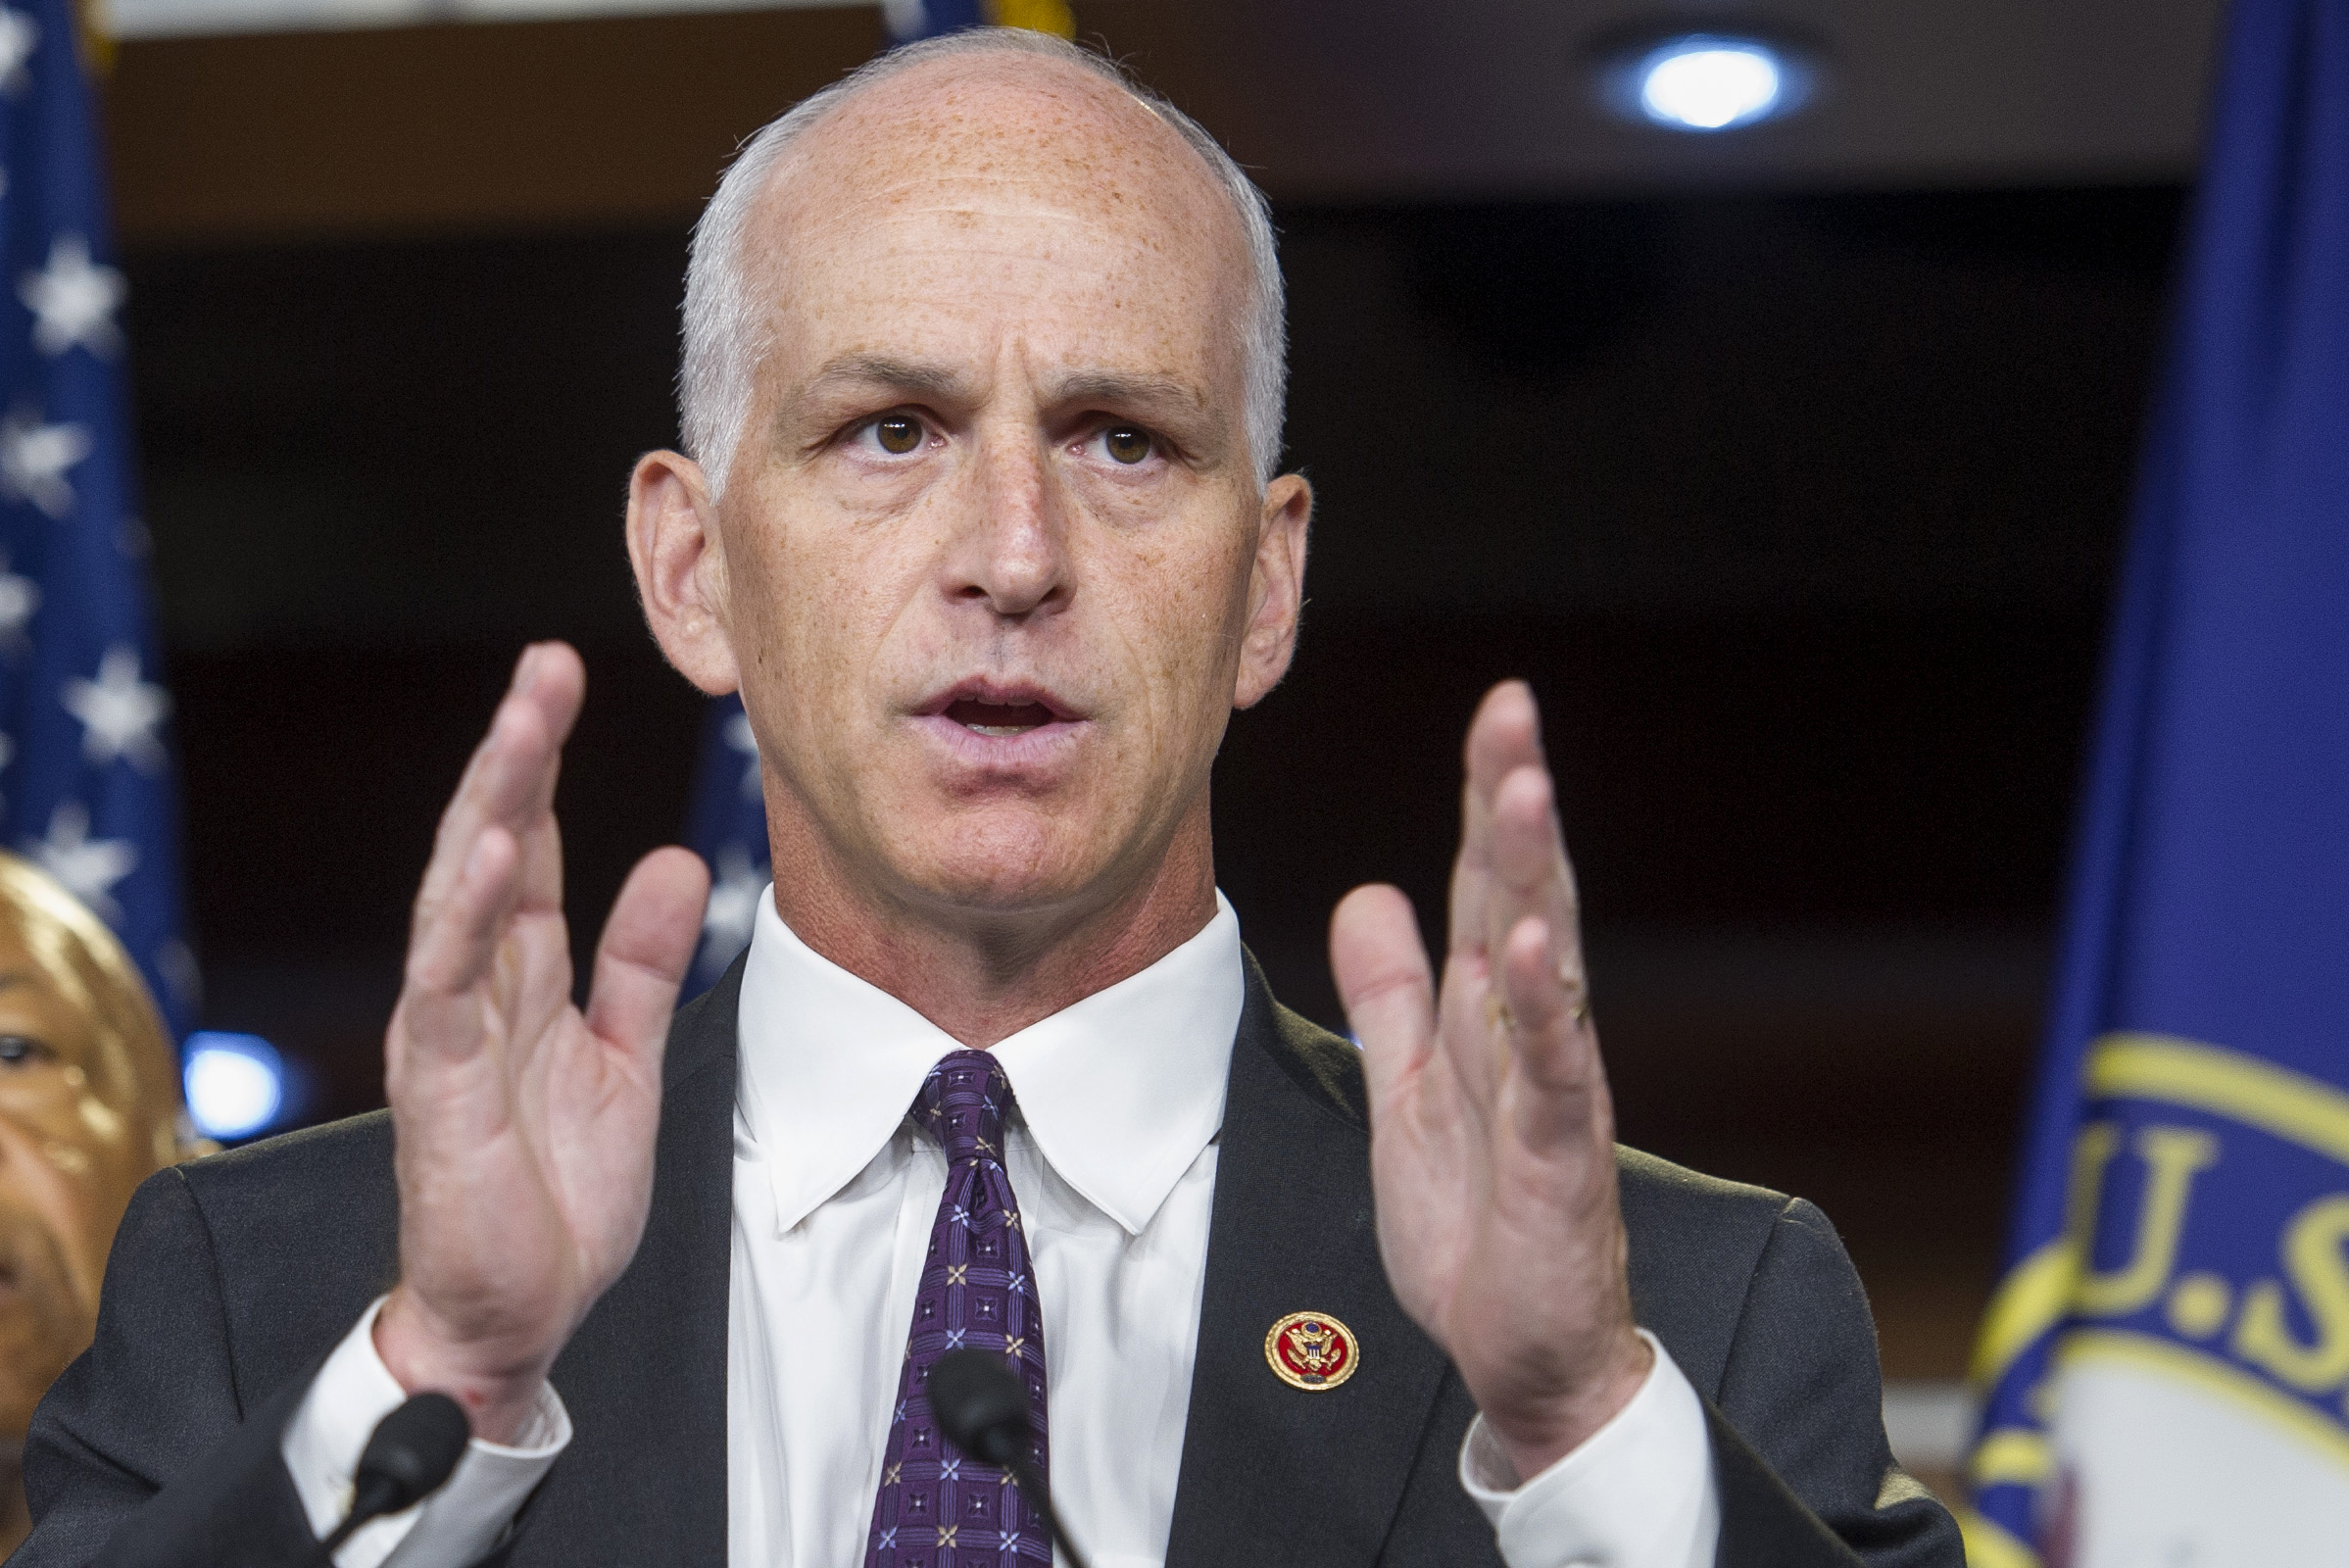 Expected incoming House Armed Services Committee Chairman Adam Smith, D-Wash., told reporters on Wednesday that he wants Congress to pass new protections for transgender troops and military recruits, but does not expect support on the issue from the Republican-controlled Senate. (Cliff Owen/AP)